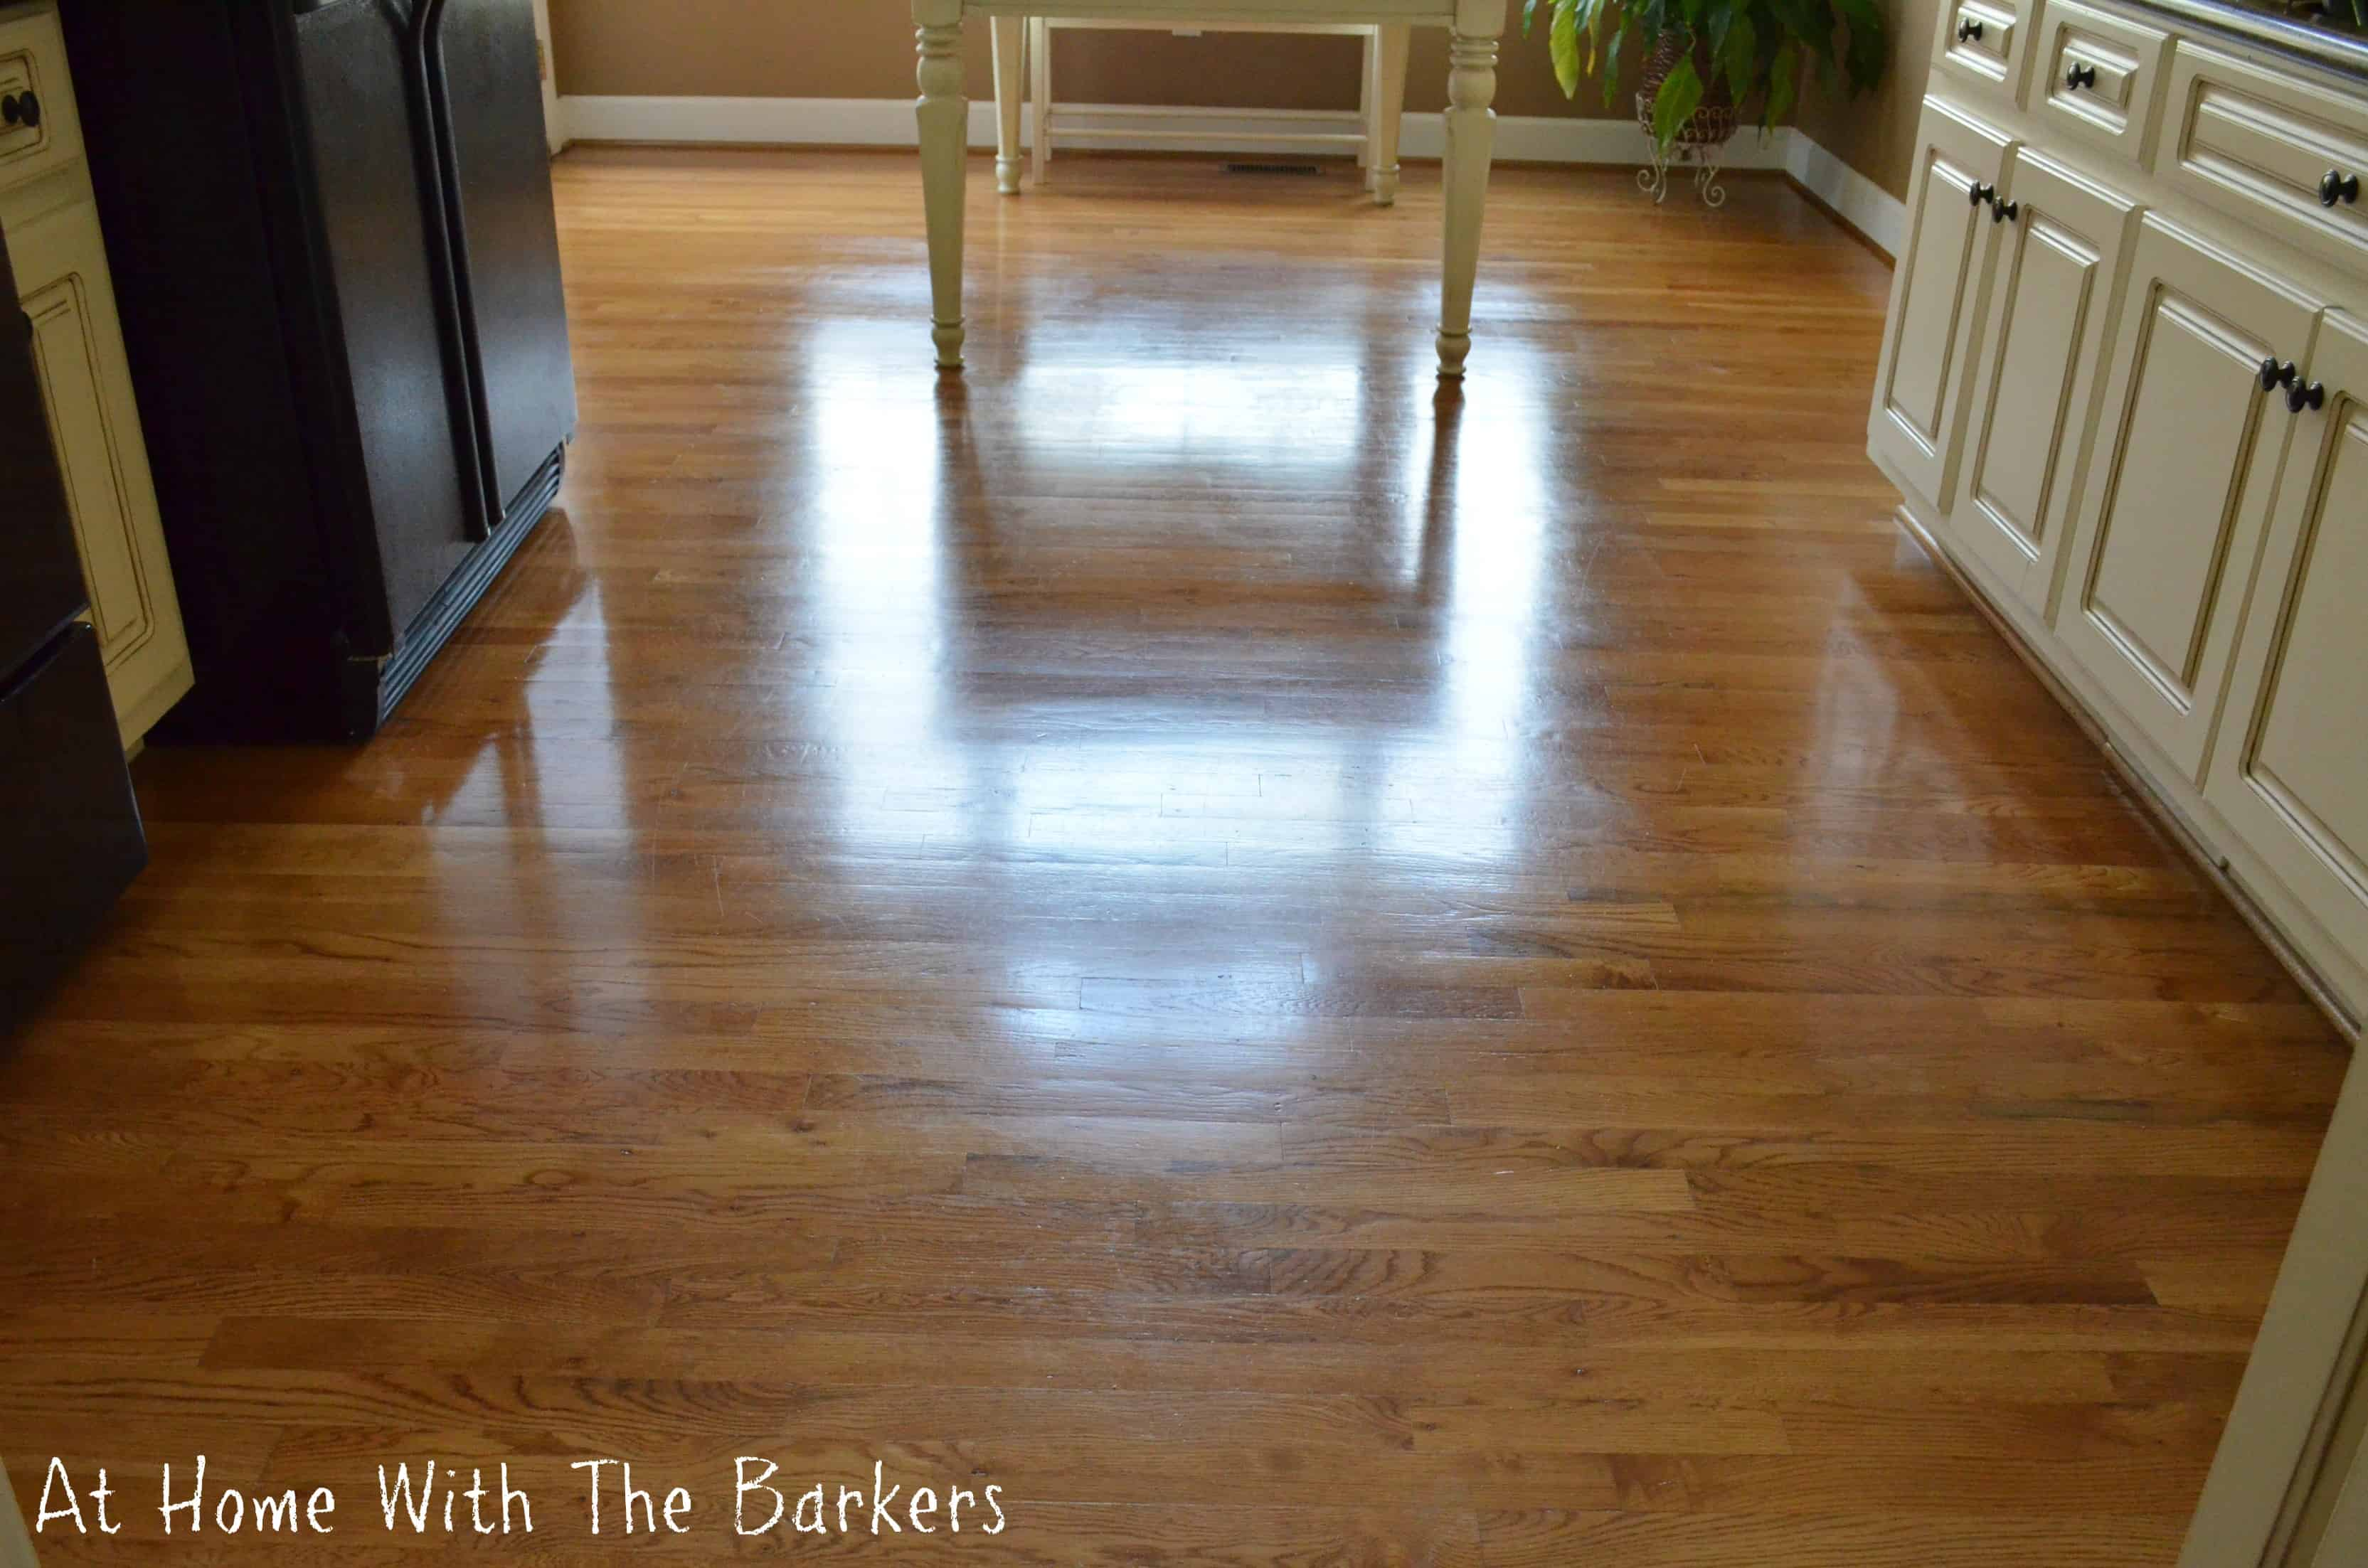 How To Get Your Floors Shine At